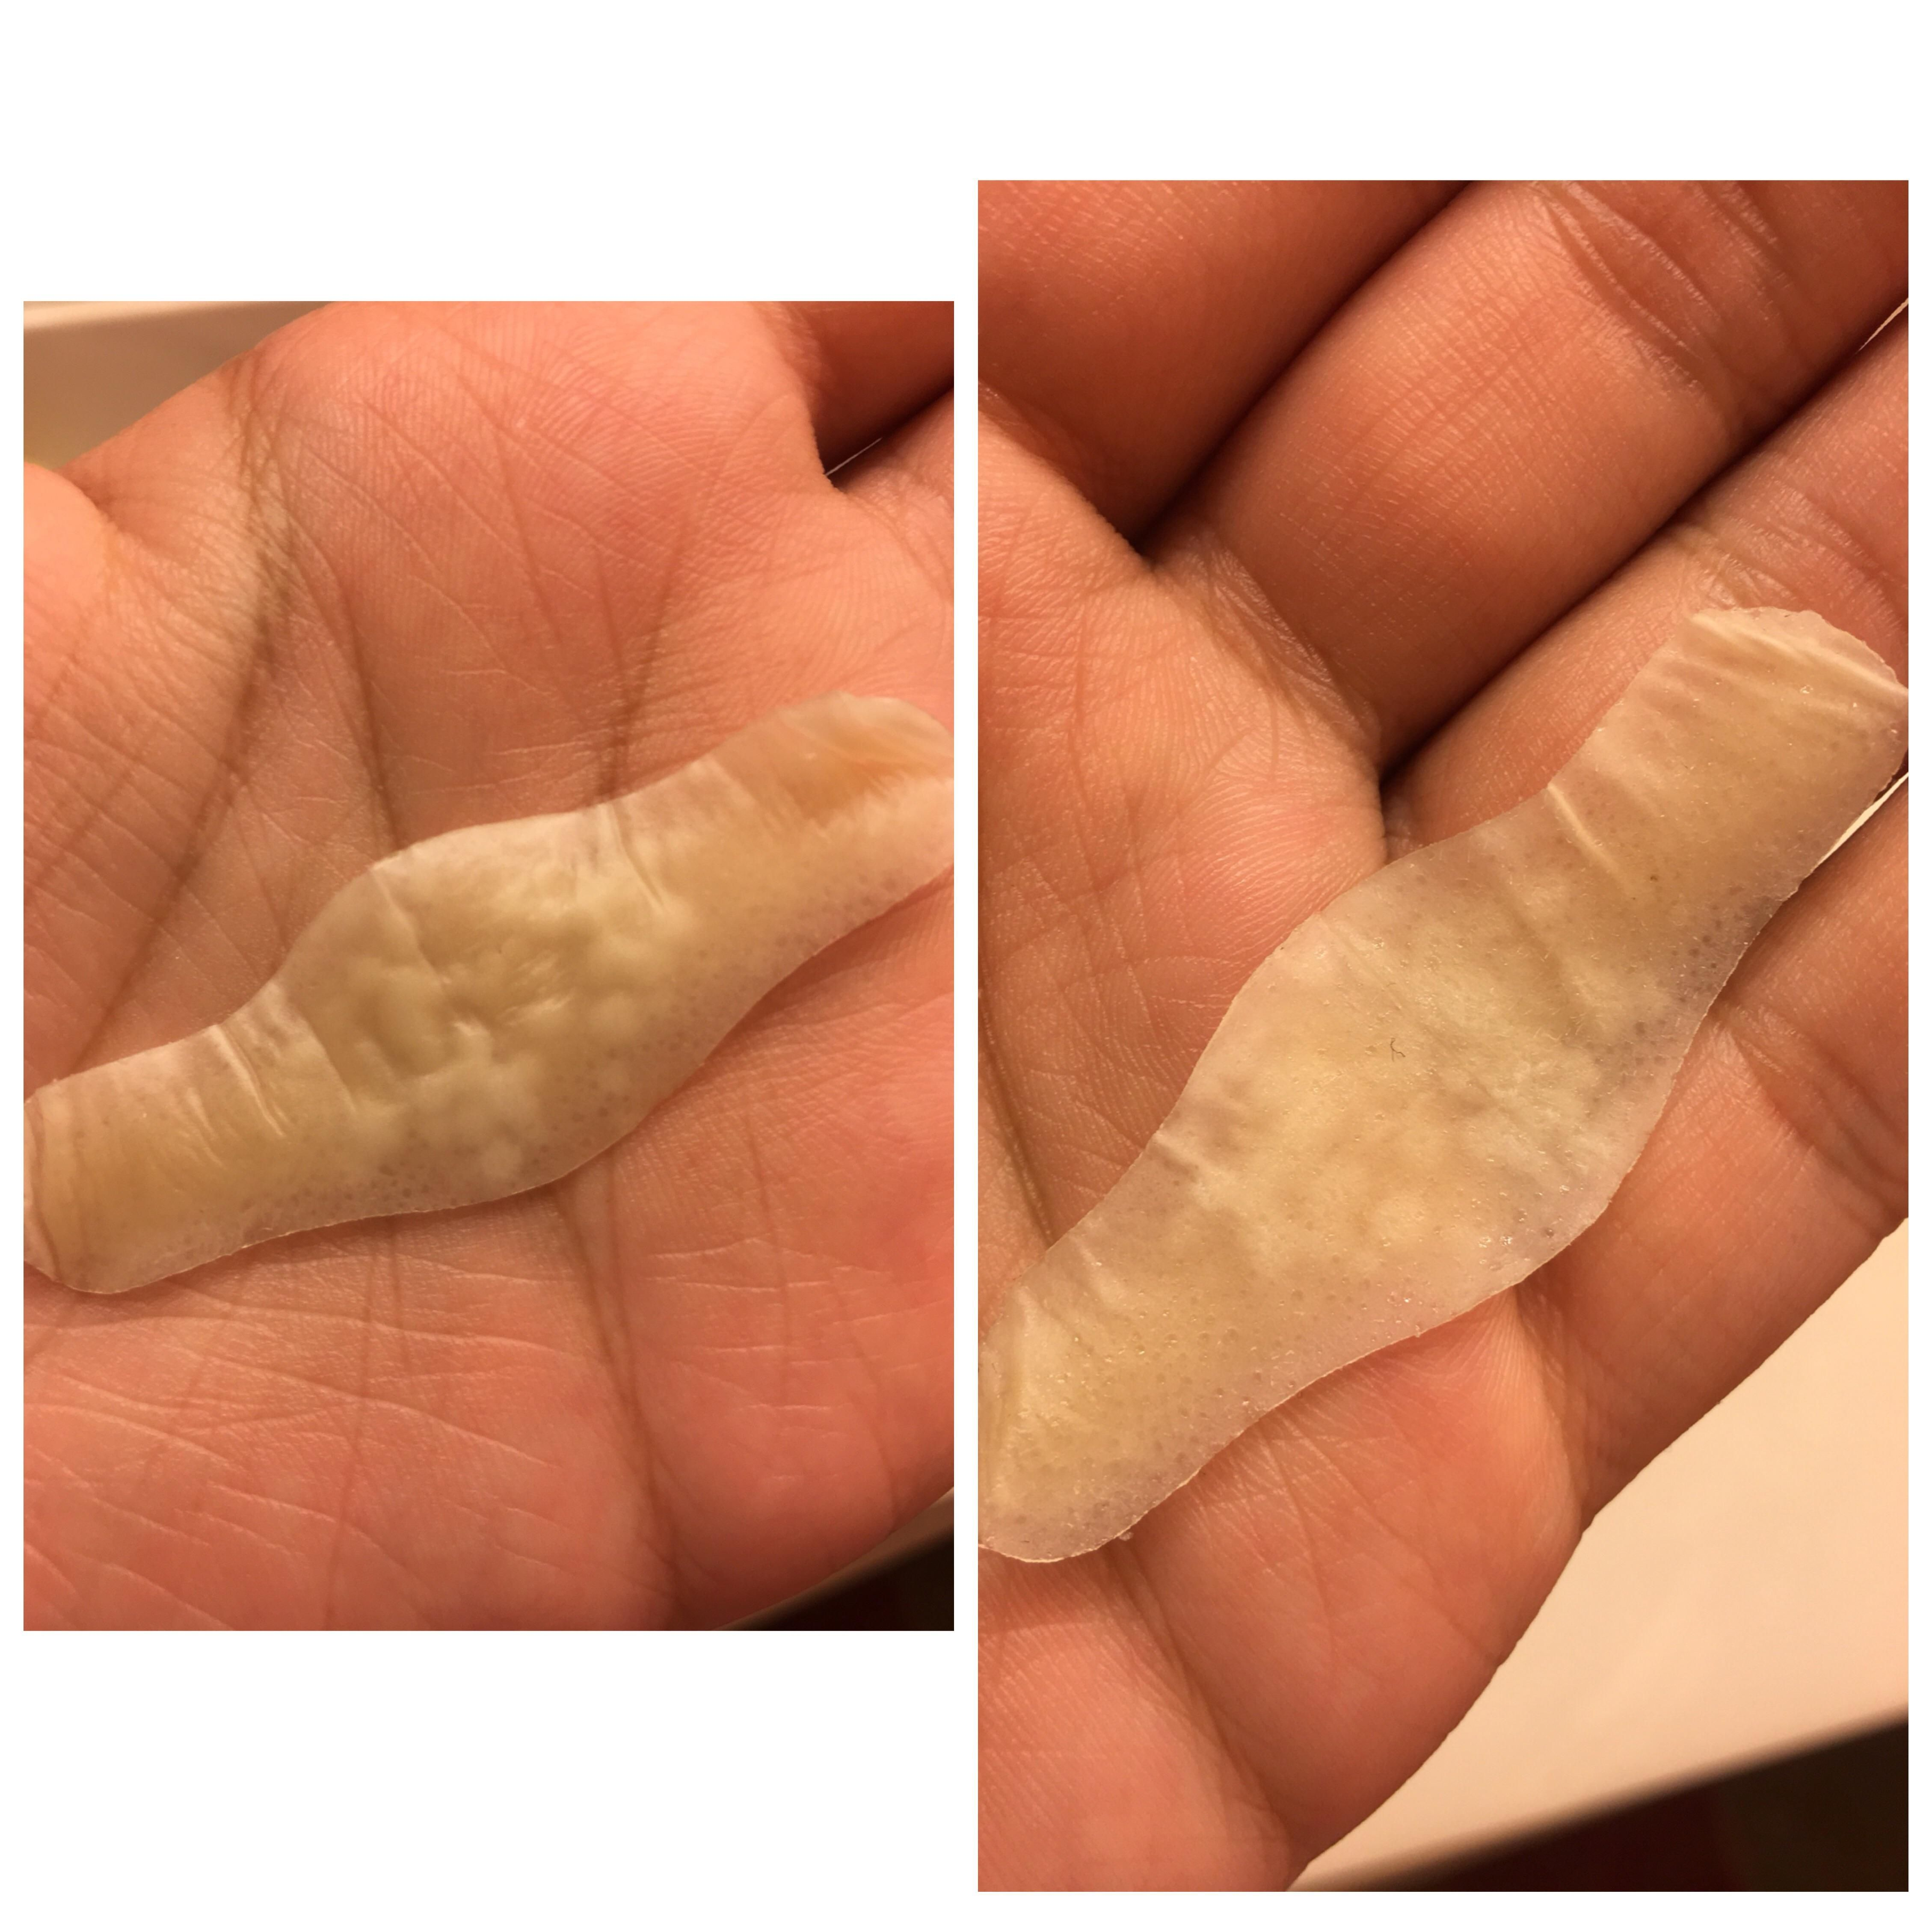 Review Band Aid Hydro Seal I Used A Hydrocolloid Bandage As A Nose Strip To Tend To My Pores Left It On Overnight Nose Strips Face Tips Bandage